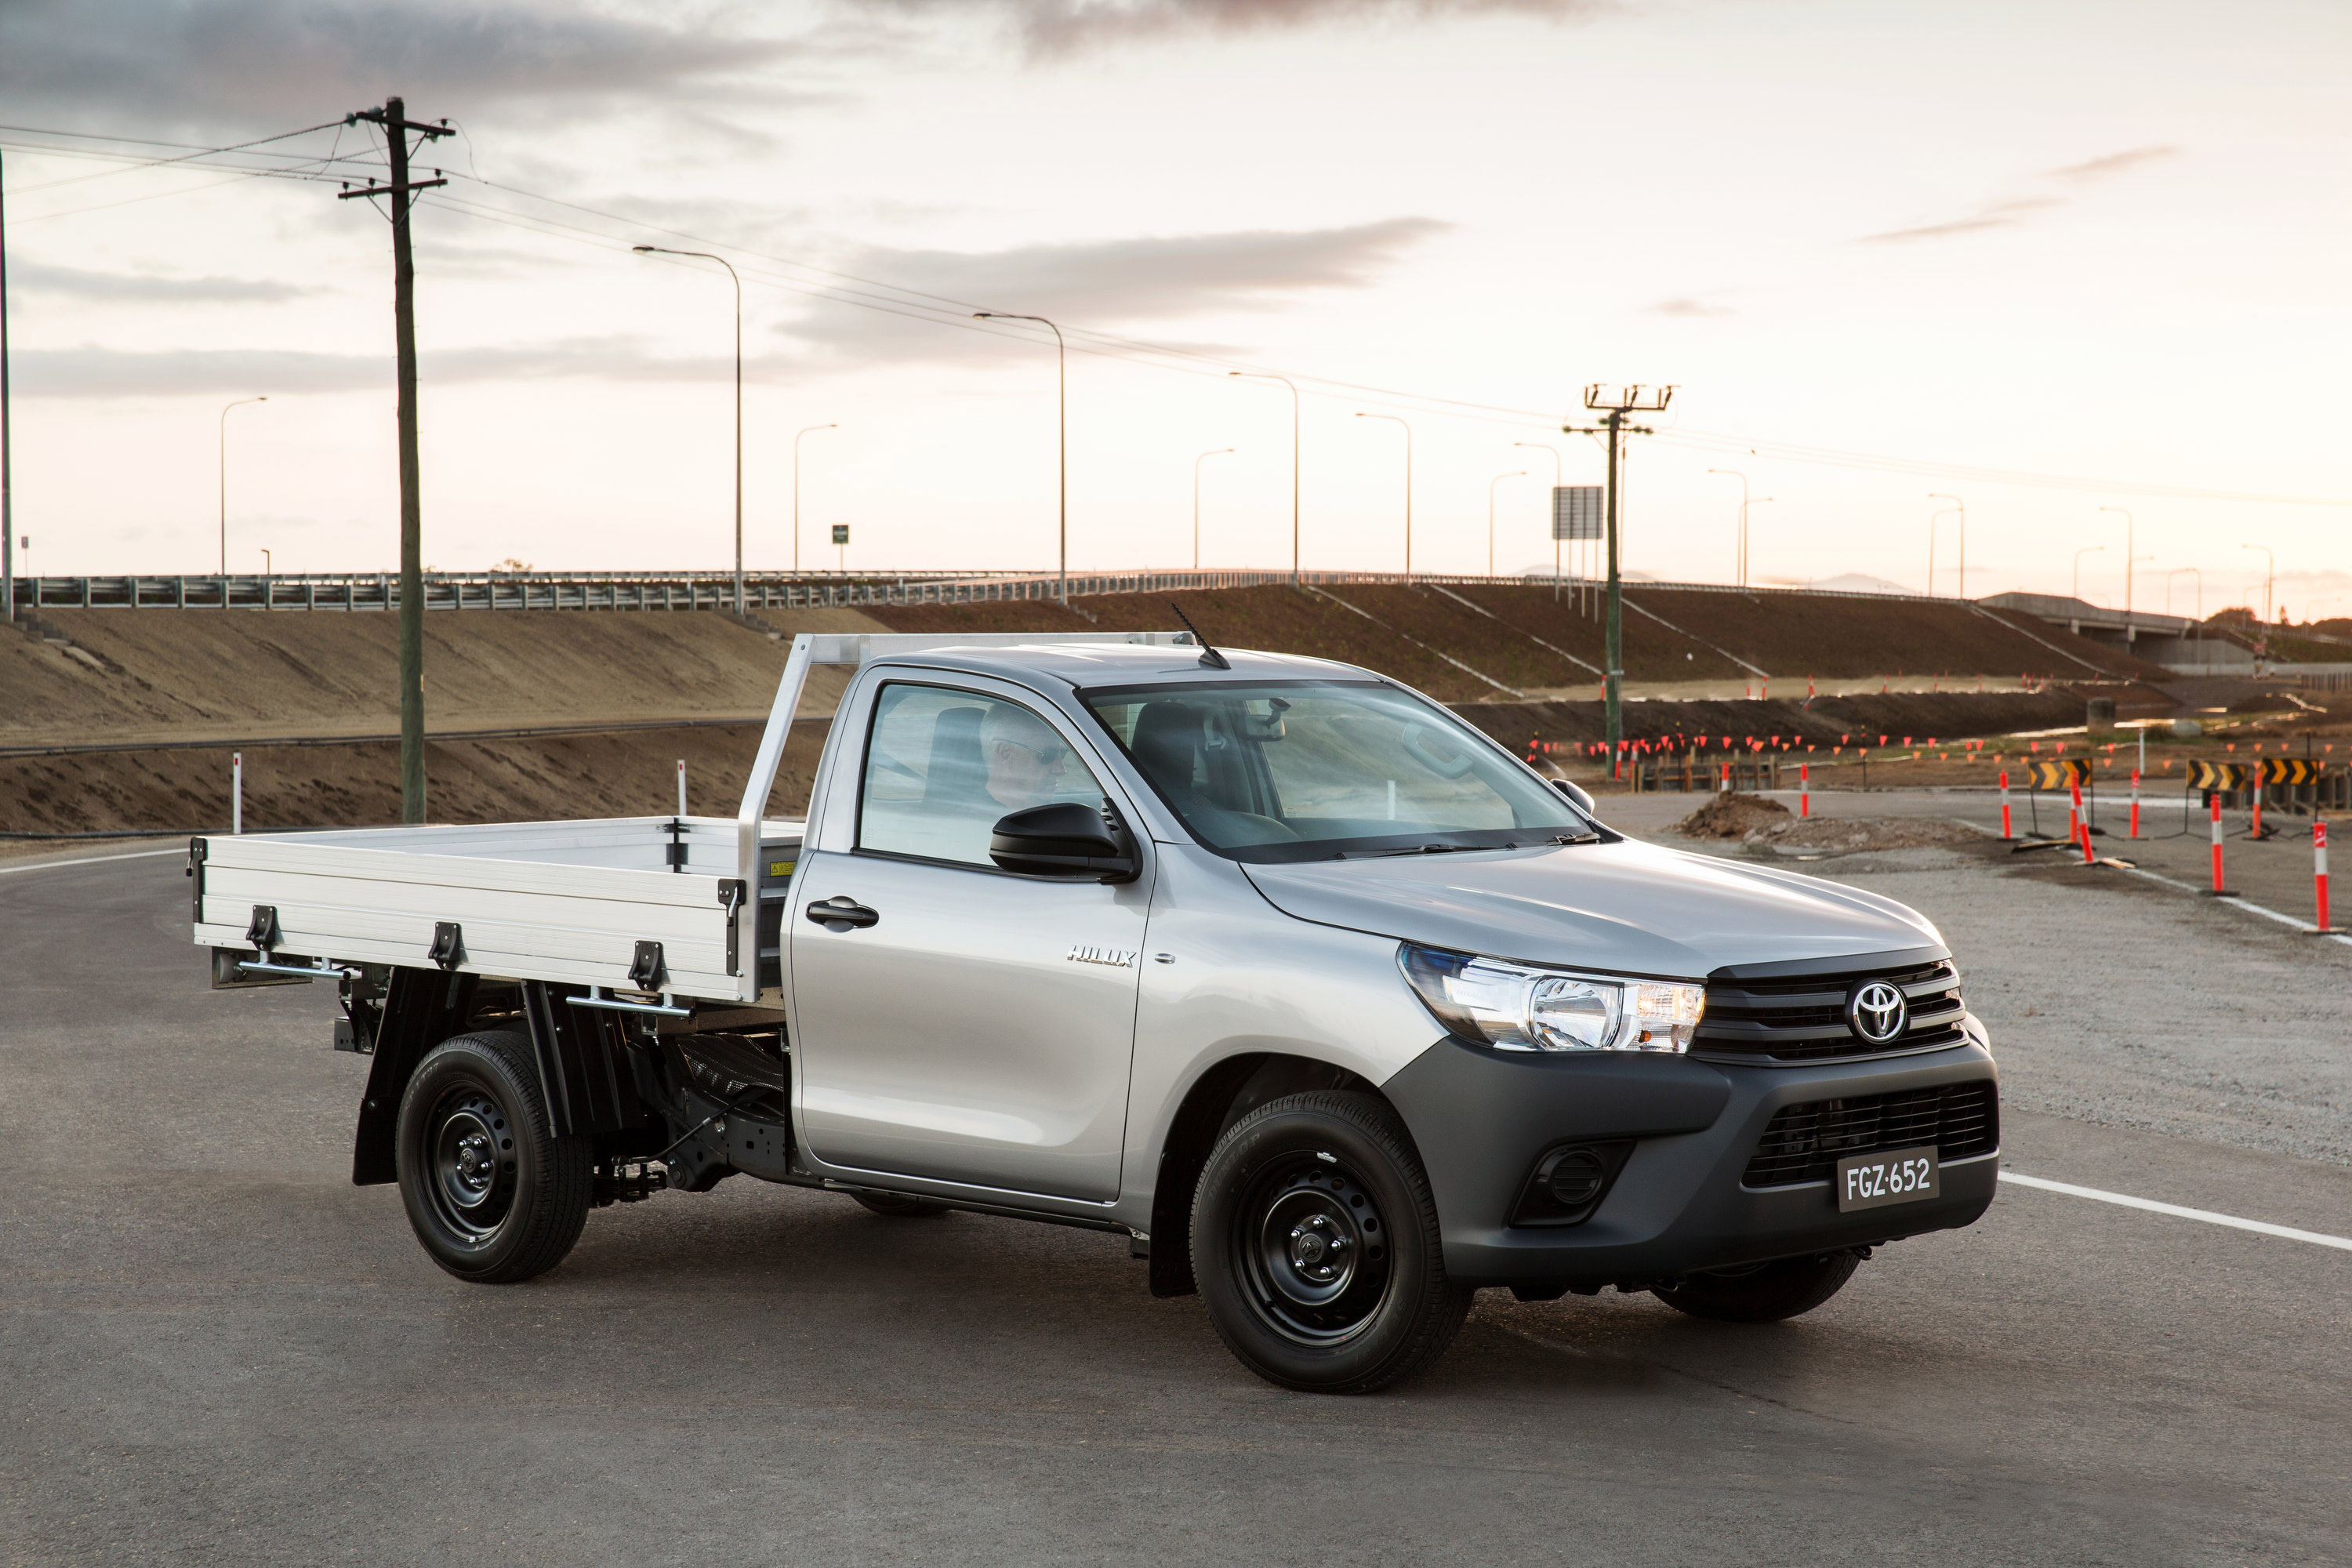 2016 toyota hilux sr 4x4 cab chassis review caradvice - 2015 Toyota Hilux 4 2 Workmate Single Cab Chassis